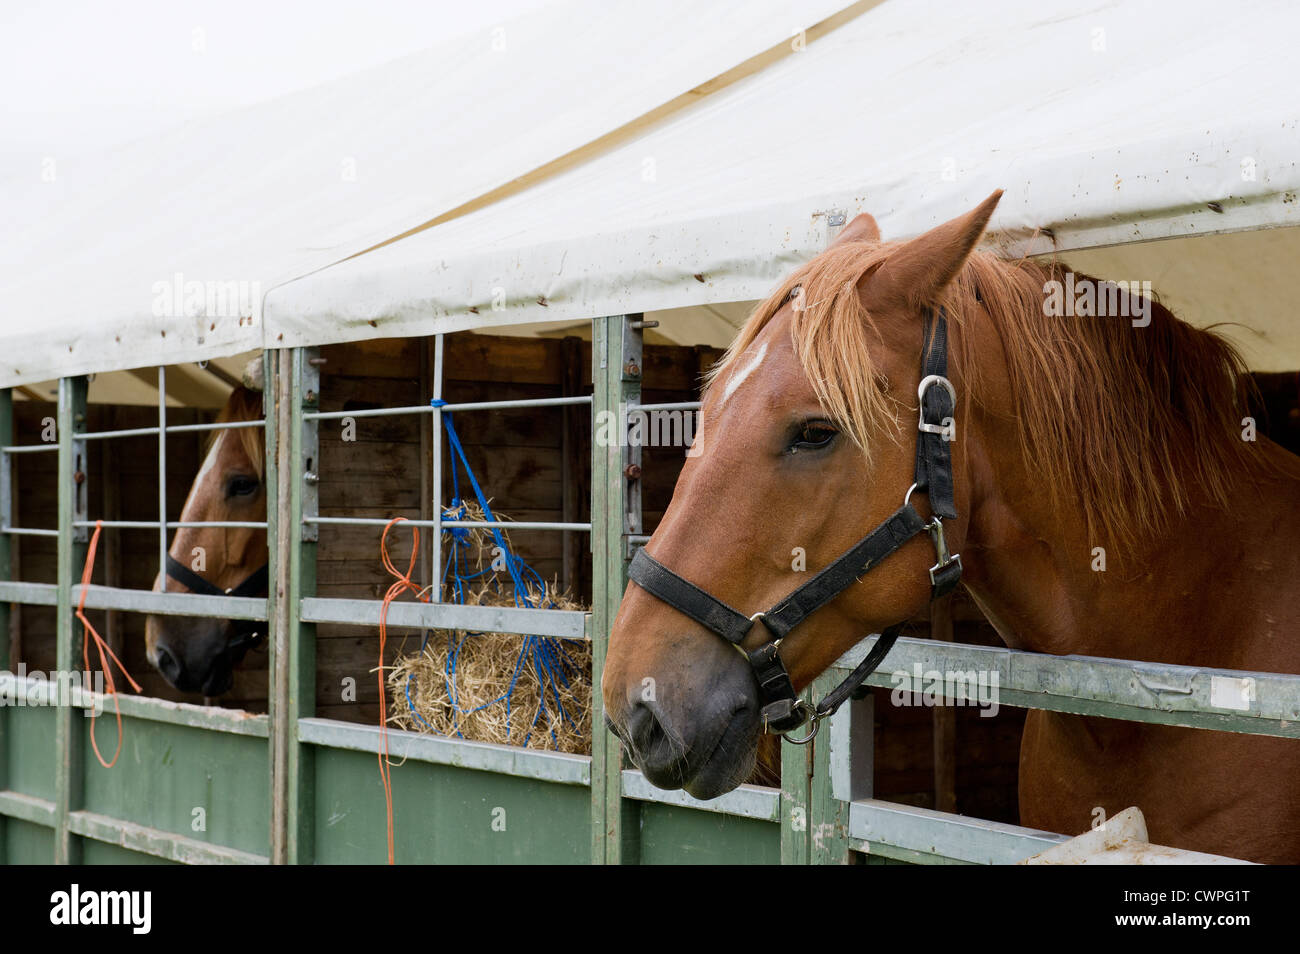 Horses in temporary stables at the Orsett Show in Essex - Stock Image